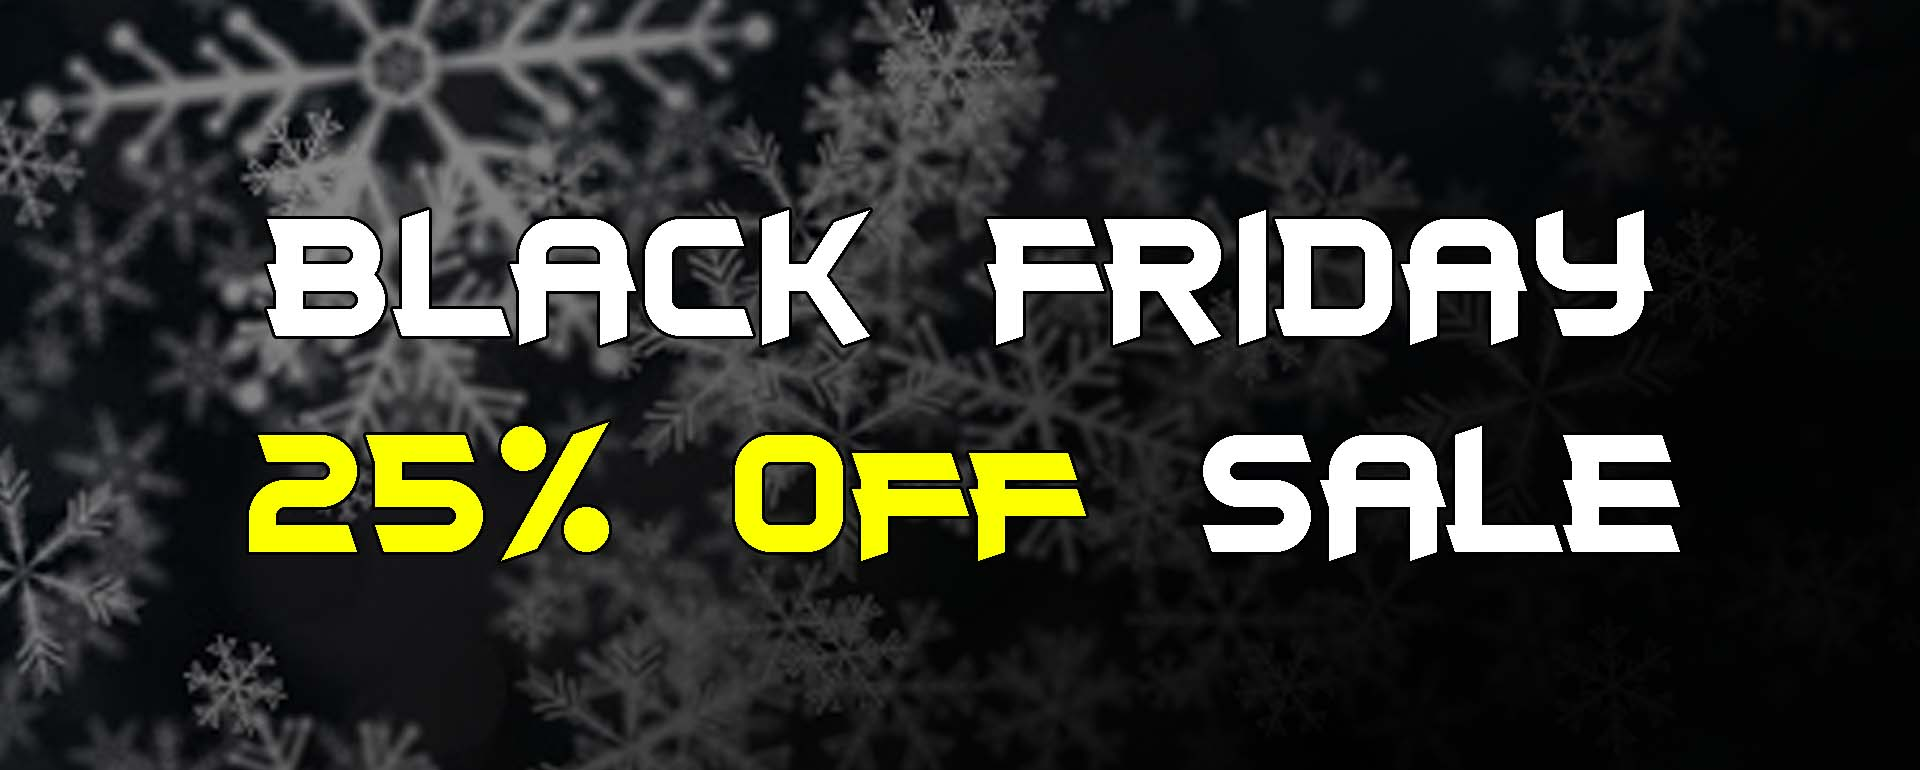 Black Friday 25% Off Sale